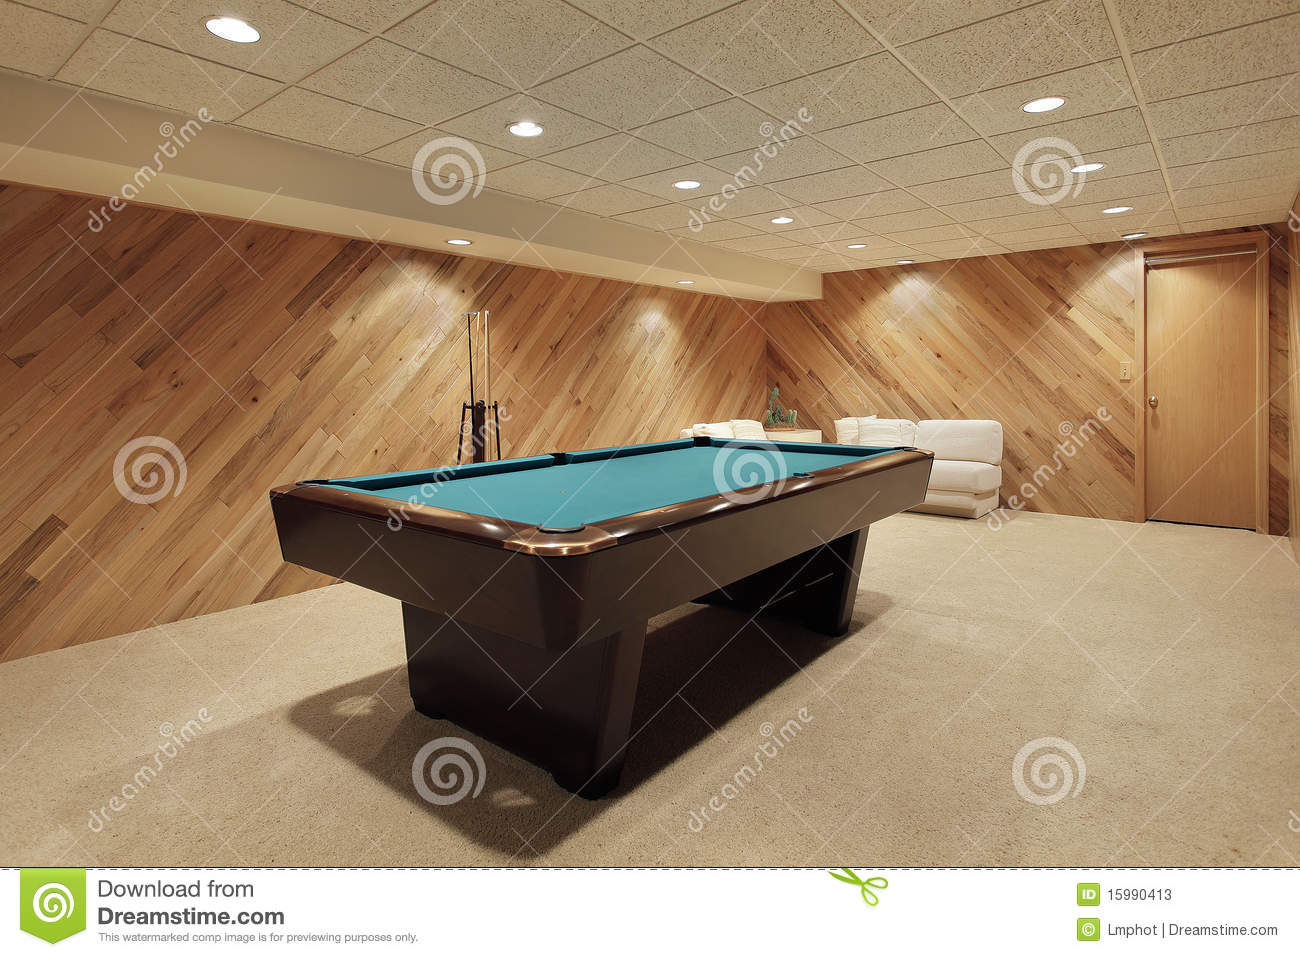 Pool Table In Basement Stock Image Image Of Elegant